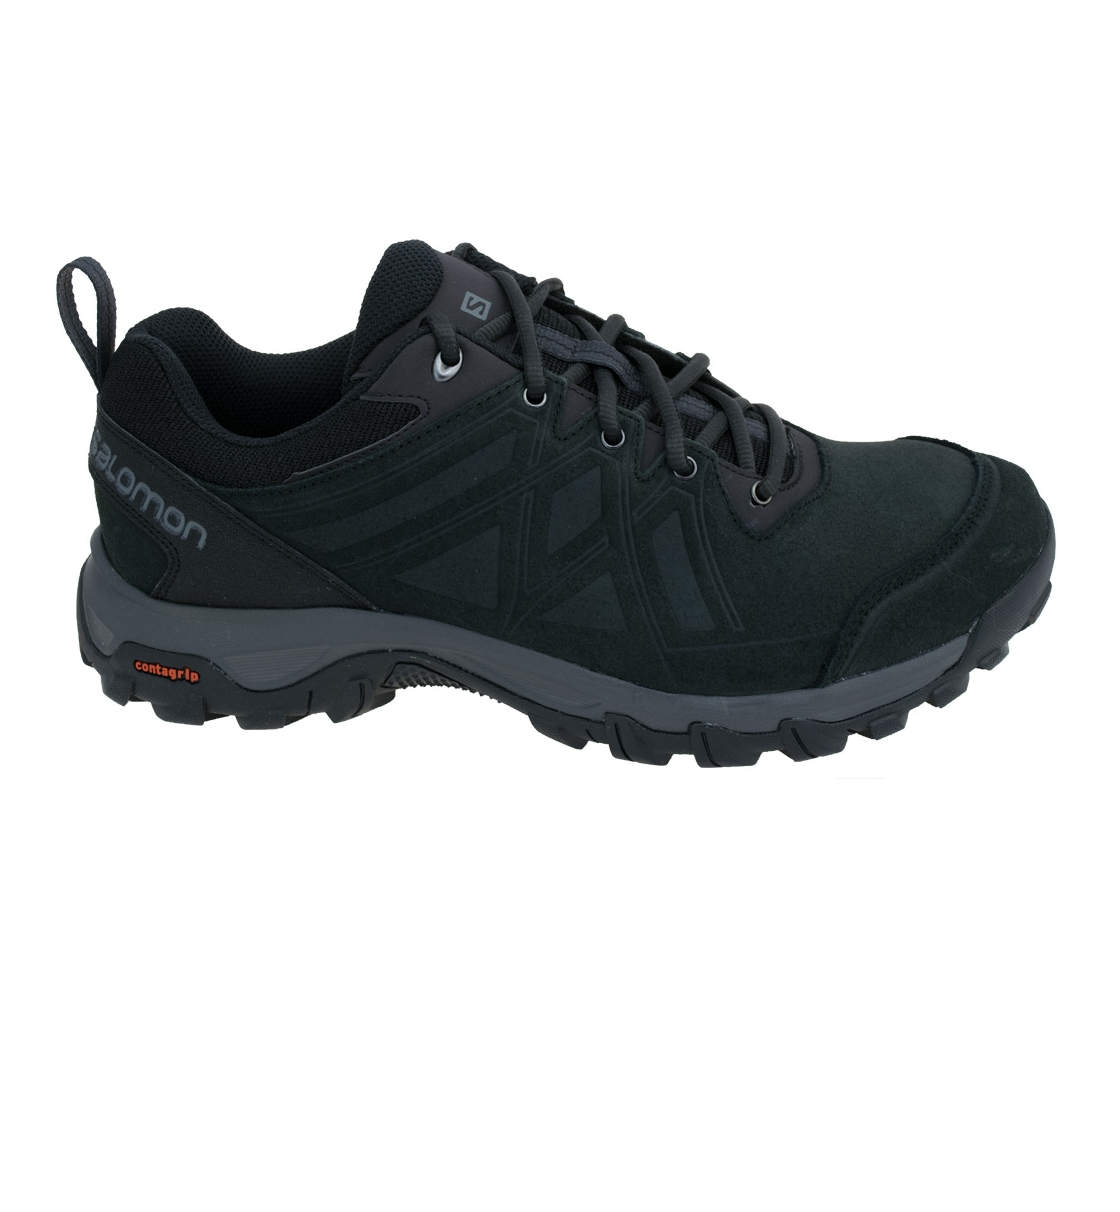 Salomon Ανδρικό Παπούτσι Trekking N Hiking & Multifunction Shoes Evasion 2 Ltr 398566